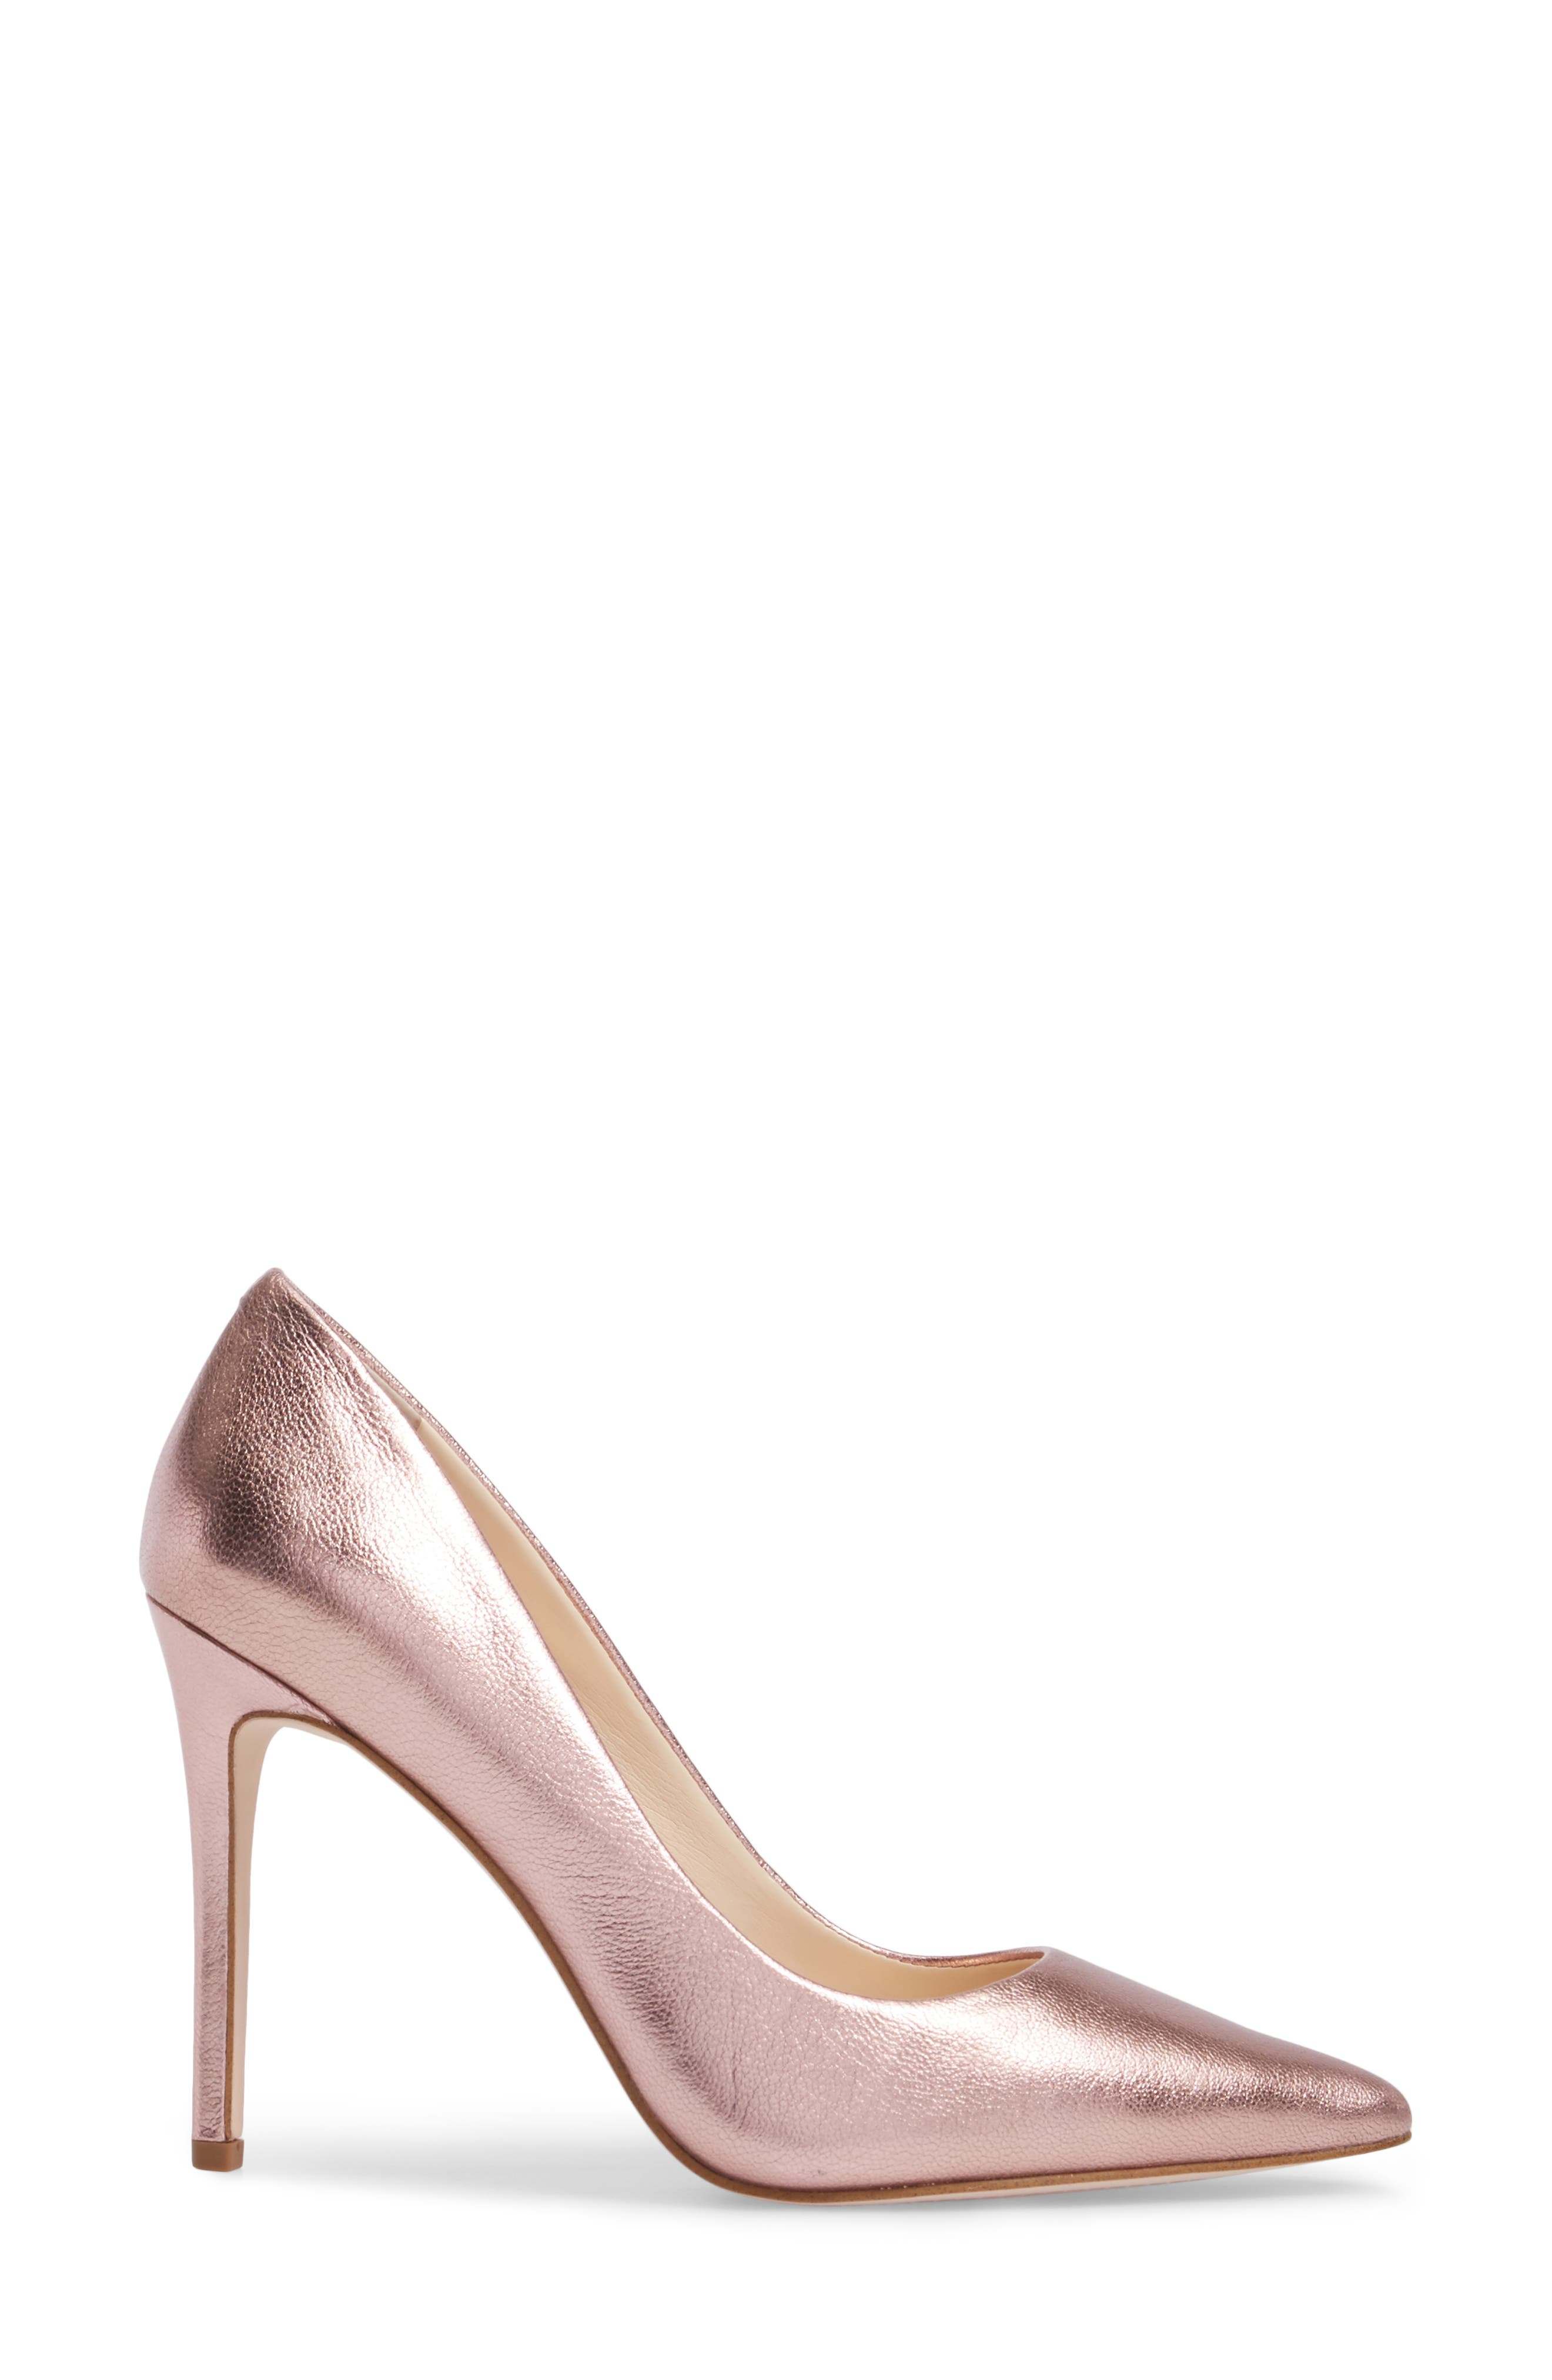 Praylee Pointy Toe Pump,                             Alternate thumbnail 3, color,                             Dolly Pink Leather